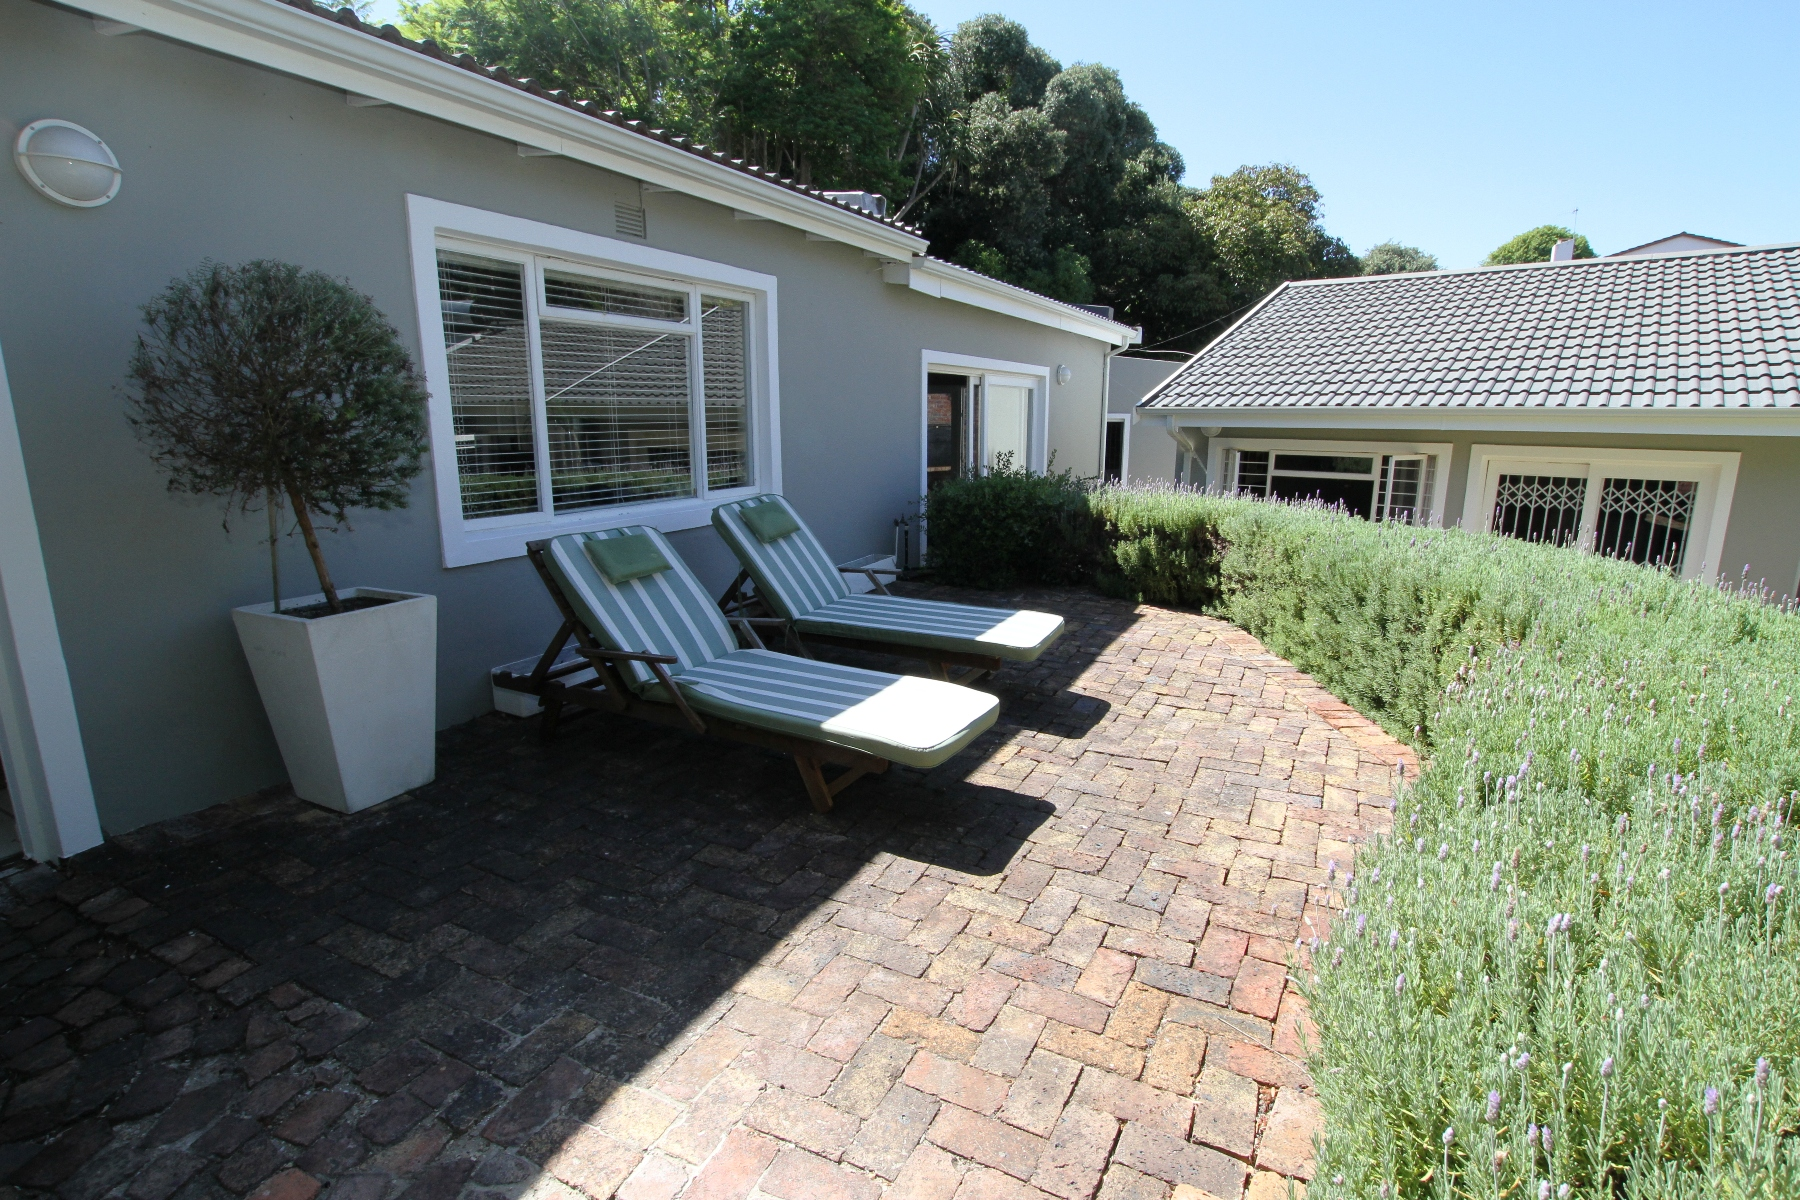 Single Family Home for Sale at CLOSE TO BEACH Plettenberg Bay, Western Cape 6600 South Africa